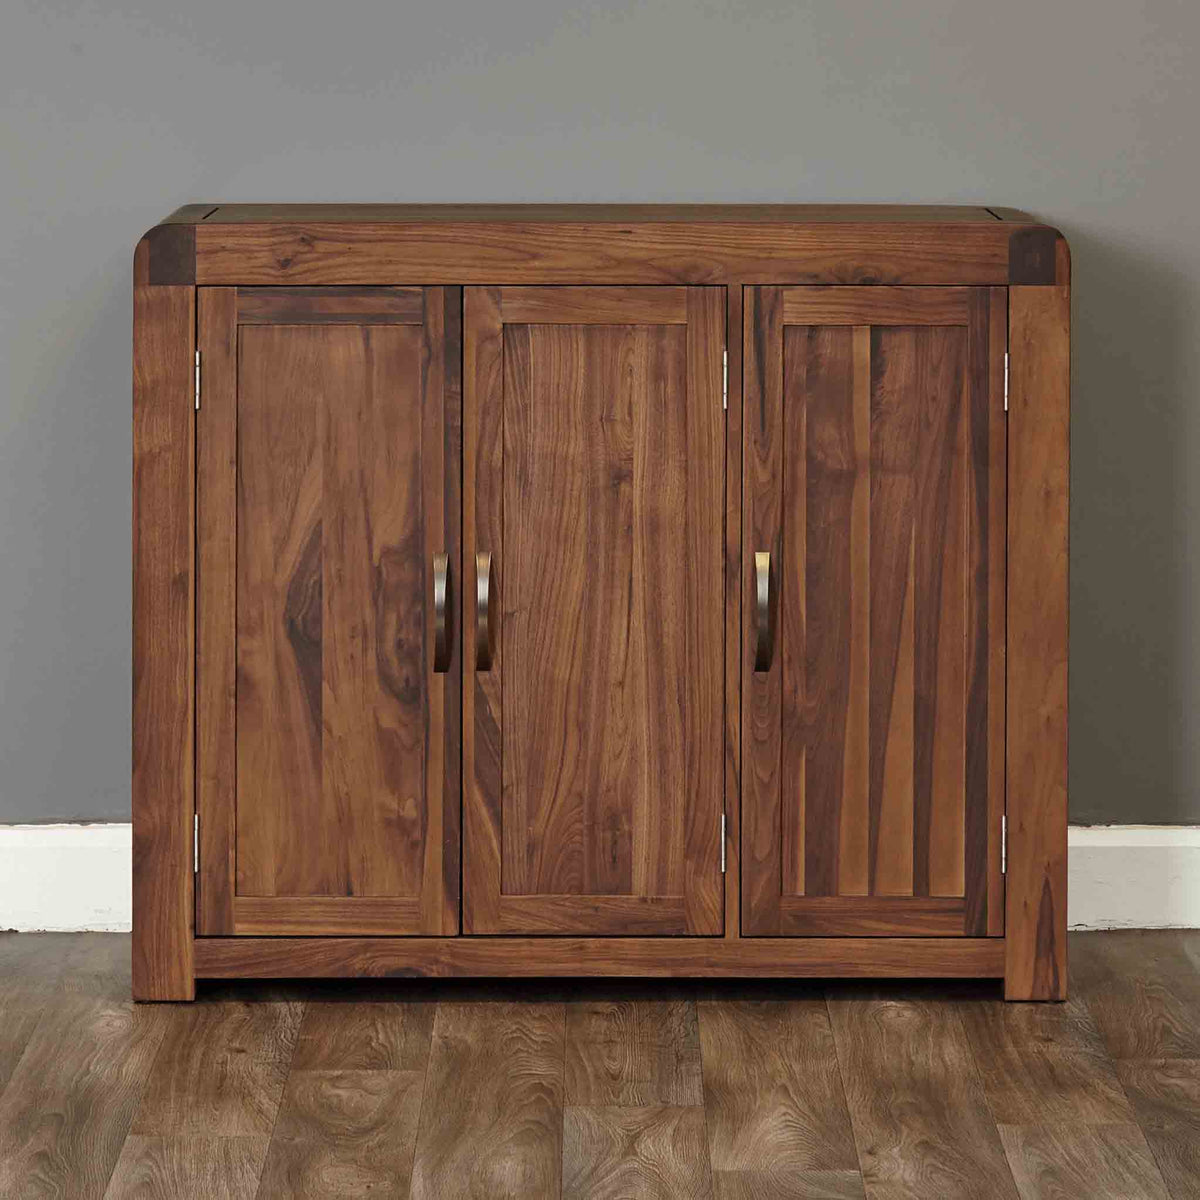 The Salem Walnut Extra Large Wooden Shoe Storage Cabinet with 3 Doors from Roseland Furniture